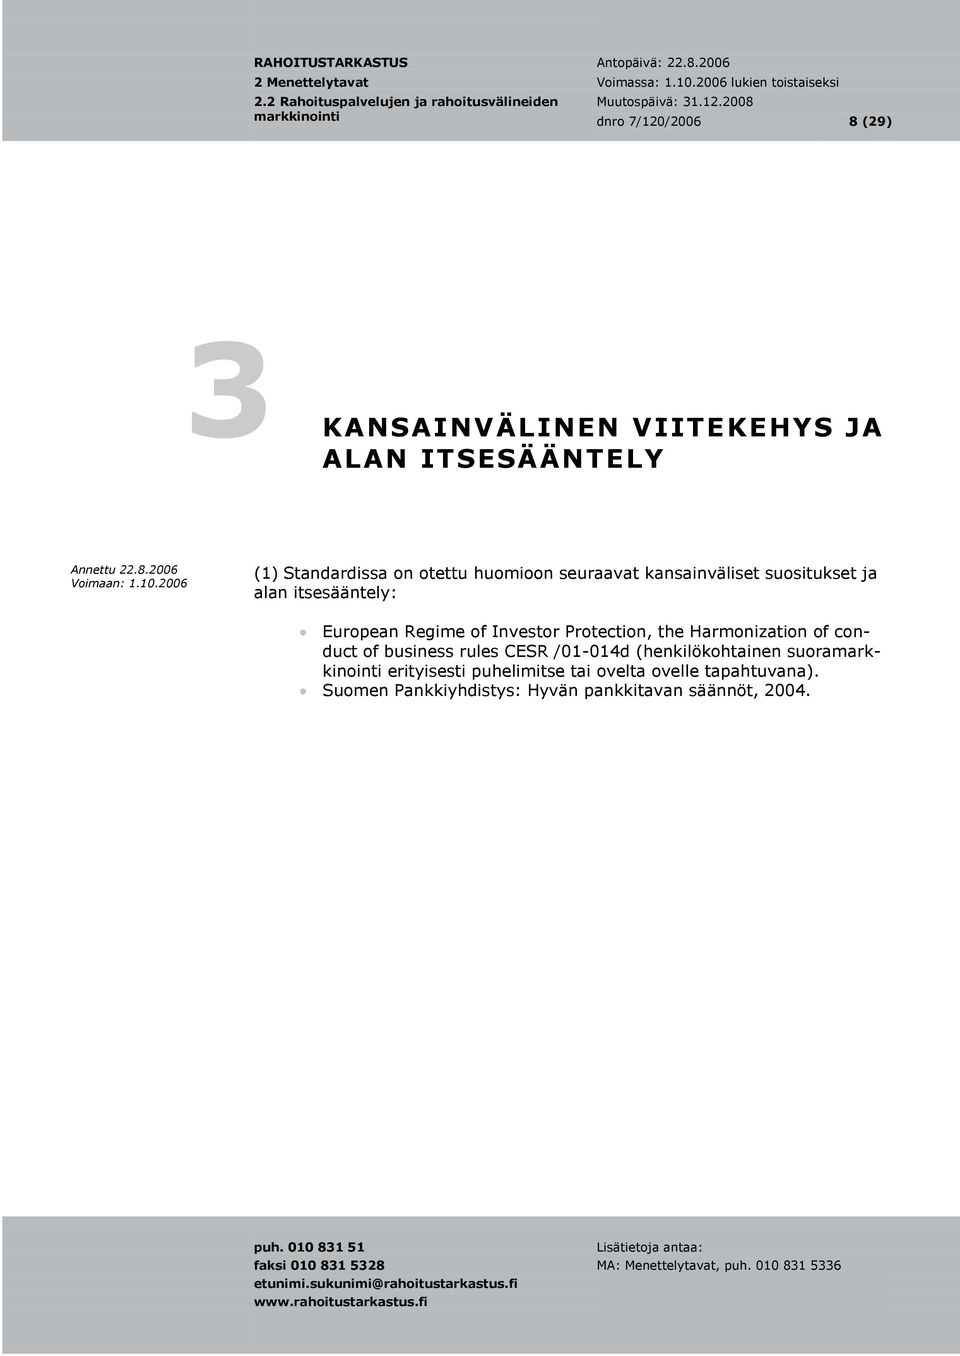 Protection, the Harmonization of conduct of business rules CESR /01-014d (henkilökohtainen suora